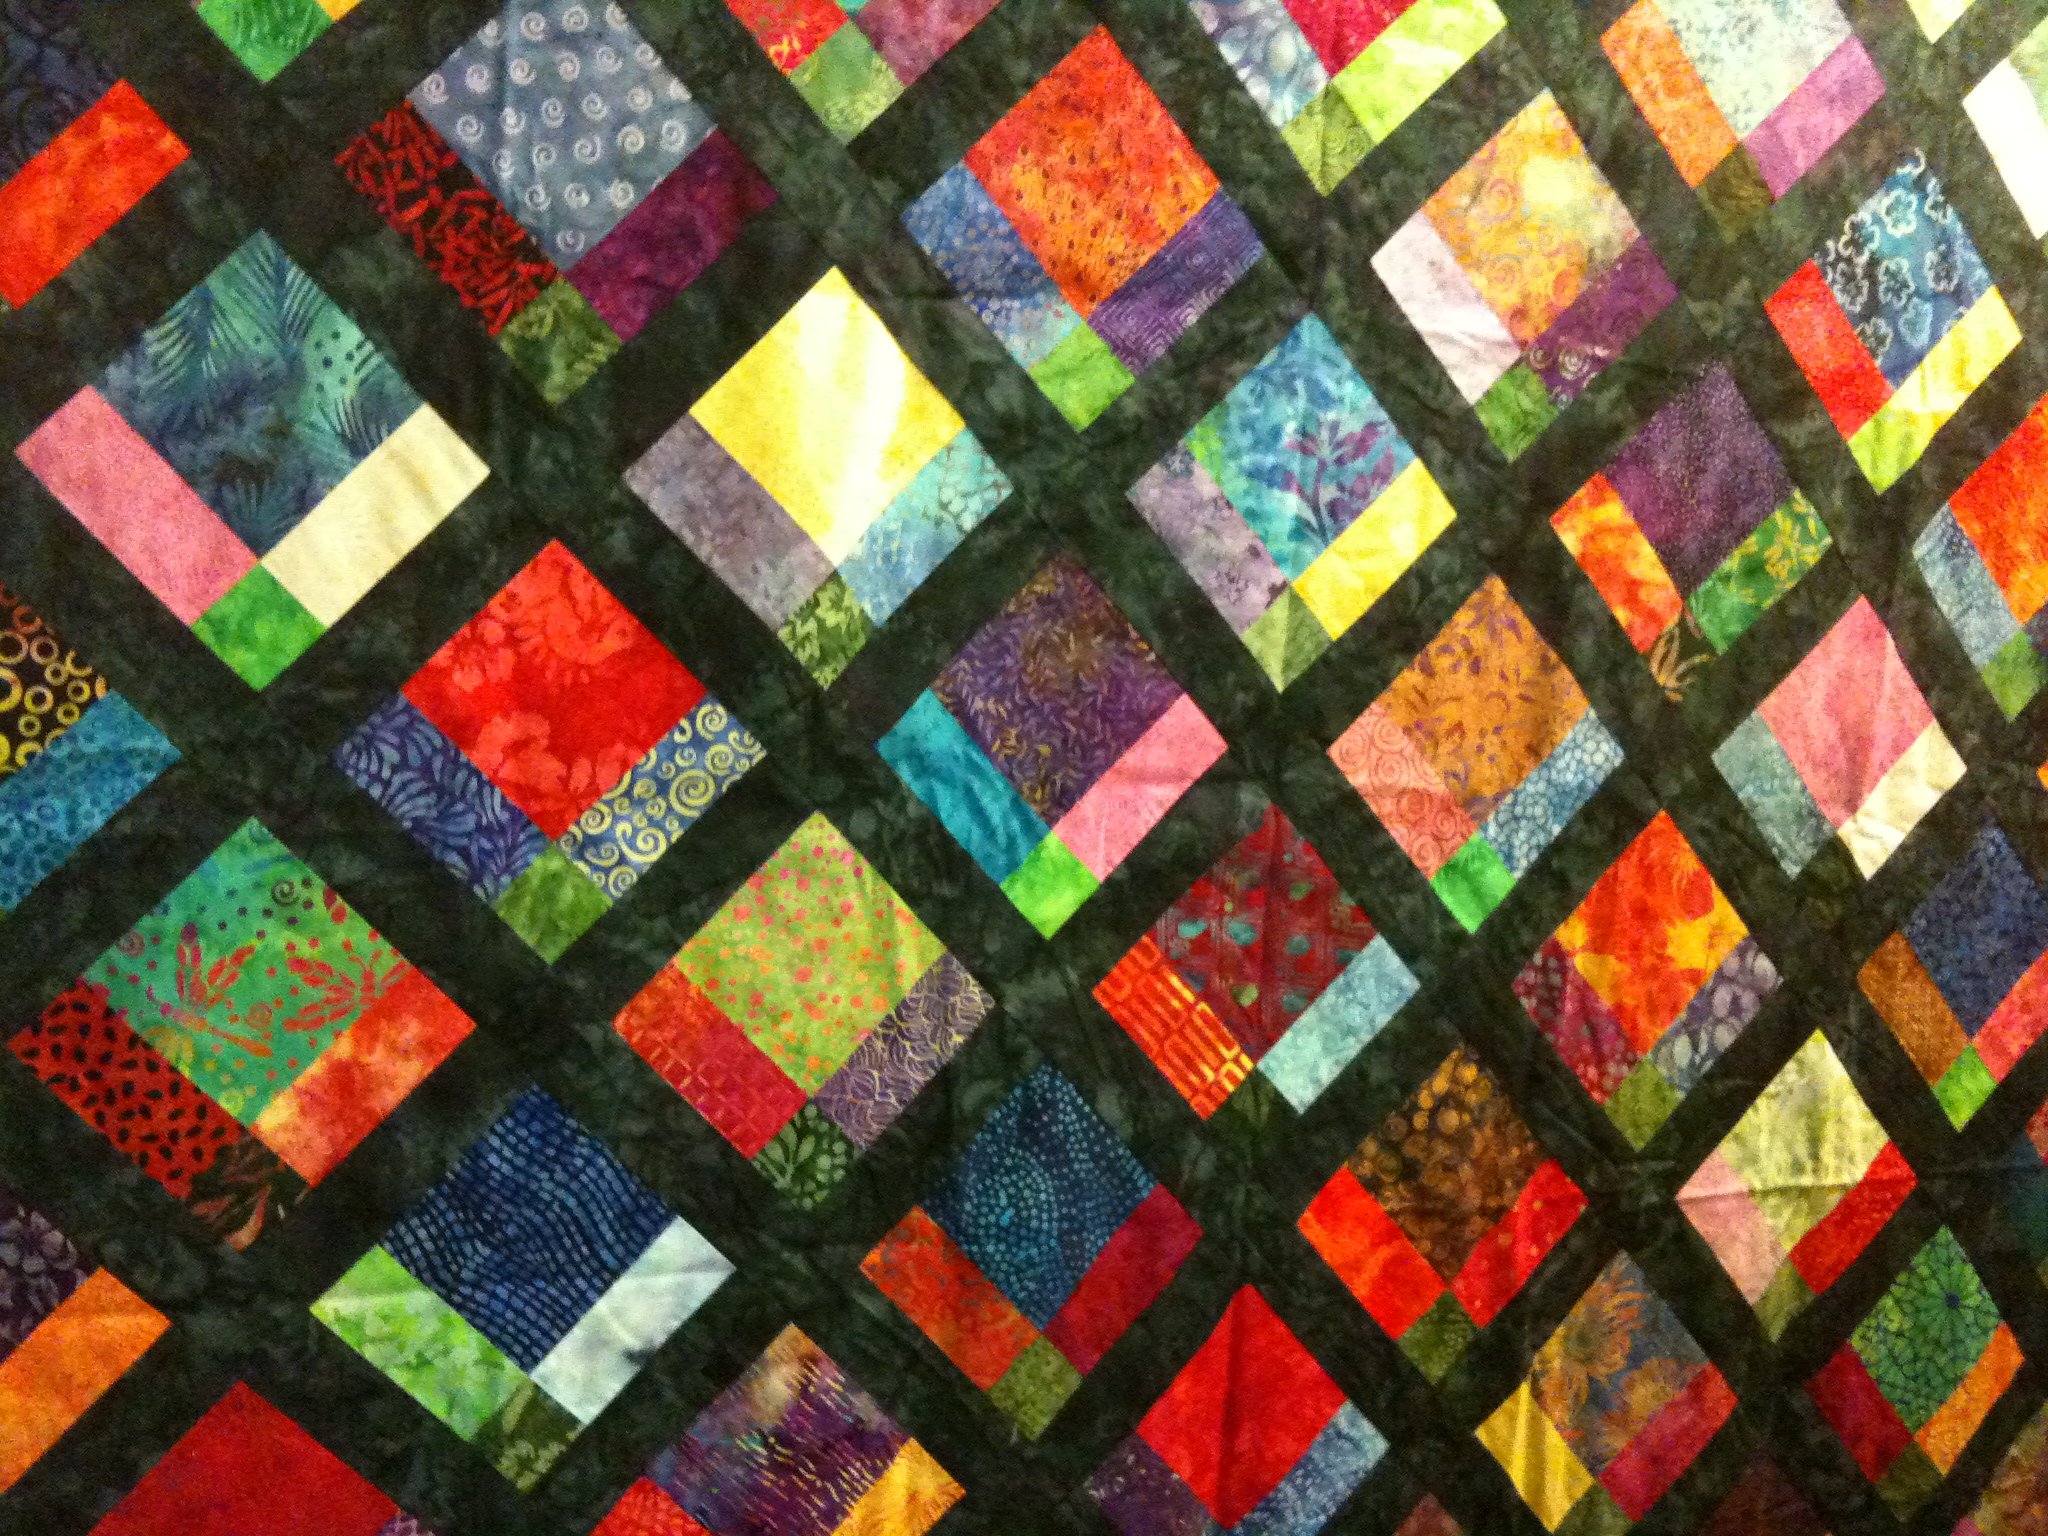 Reluctant quilter: hidden 9 patch/disappearing 9 patch tutorial.